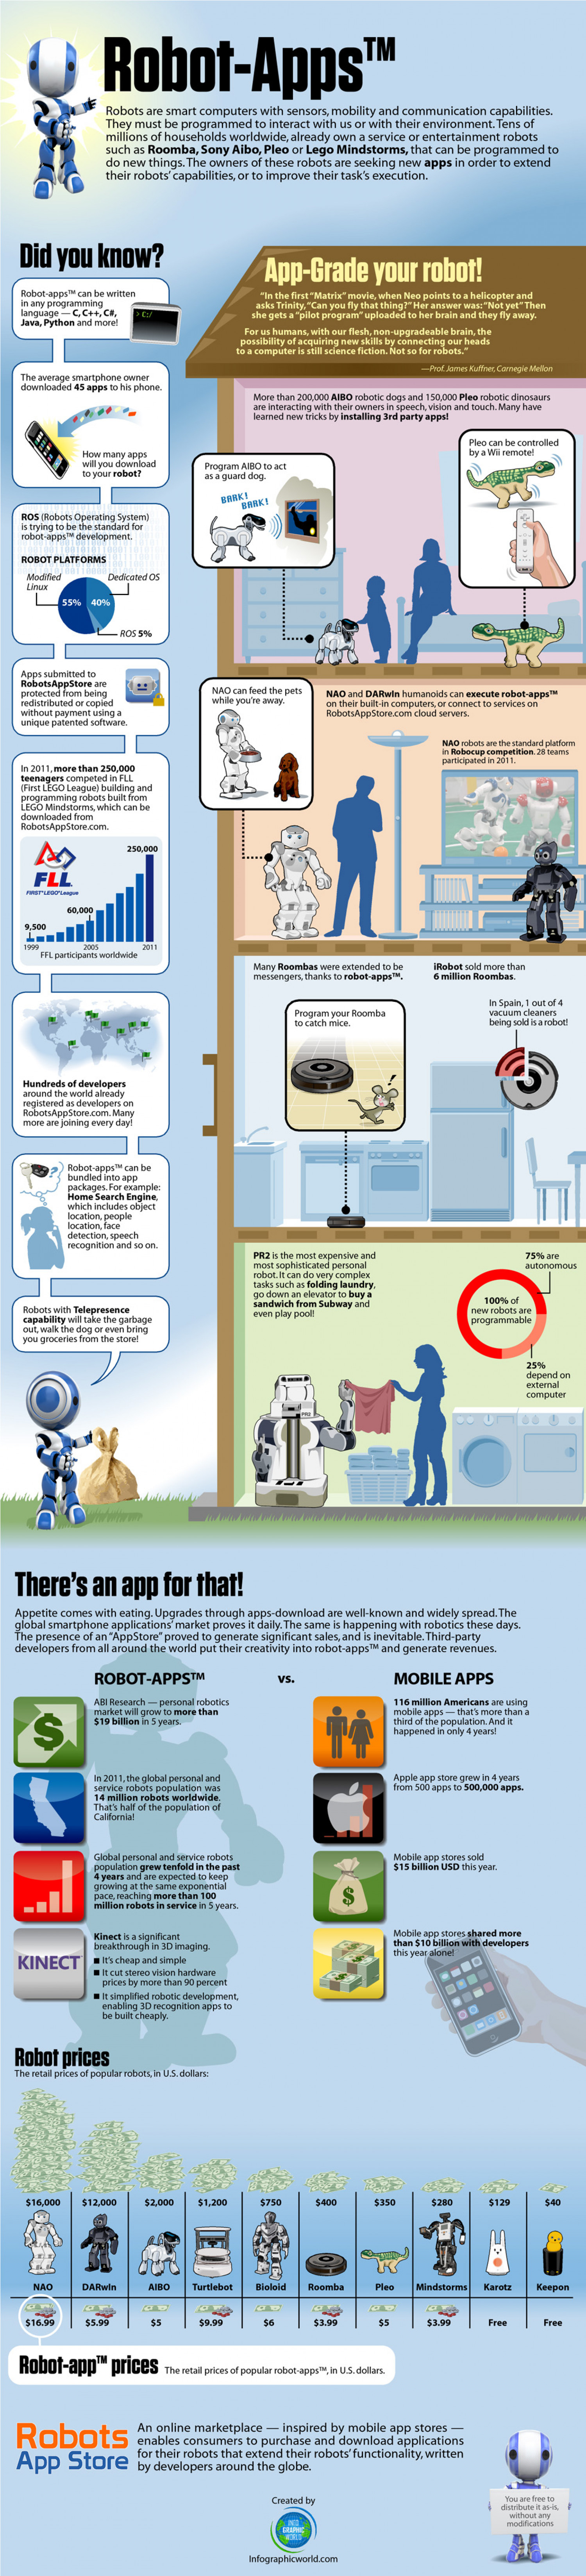 RobotAppStore - Infographics on Robot Apps Infographic